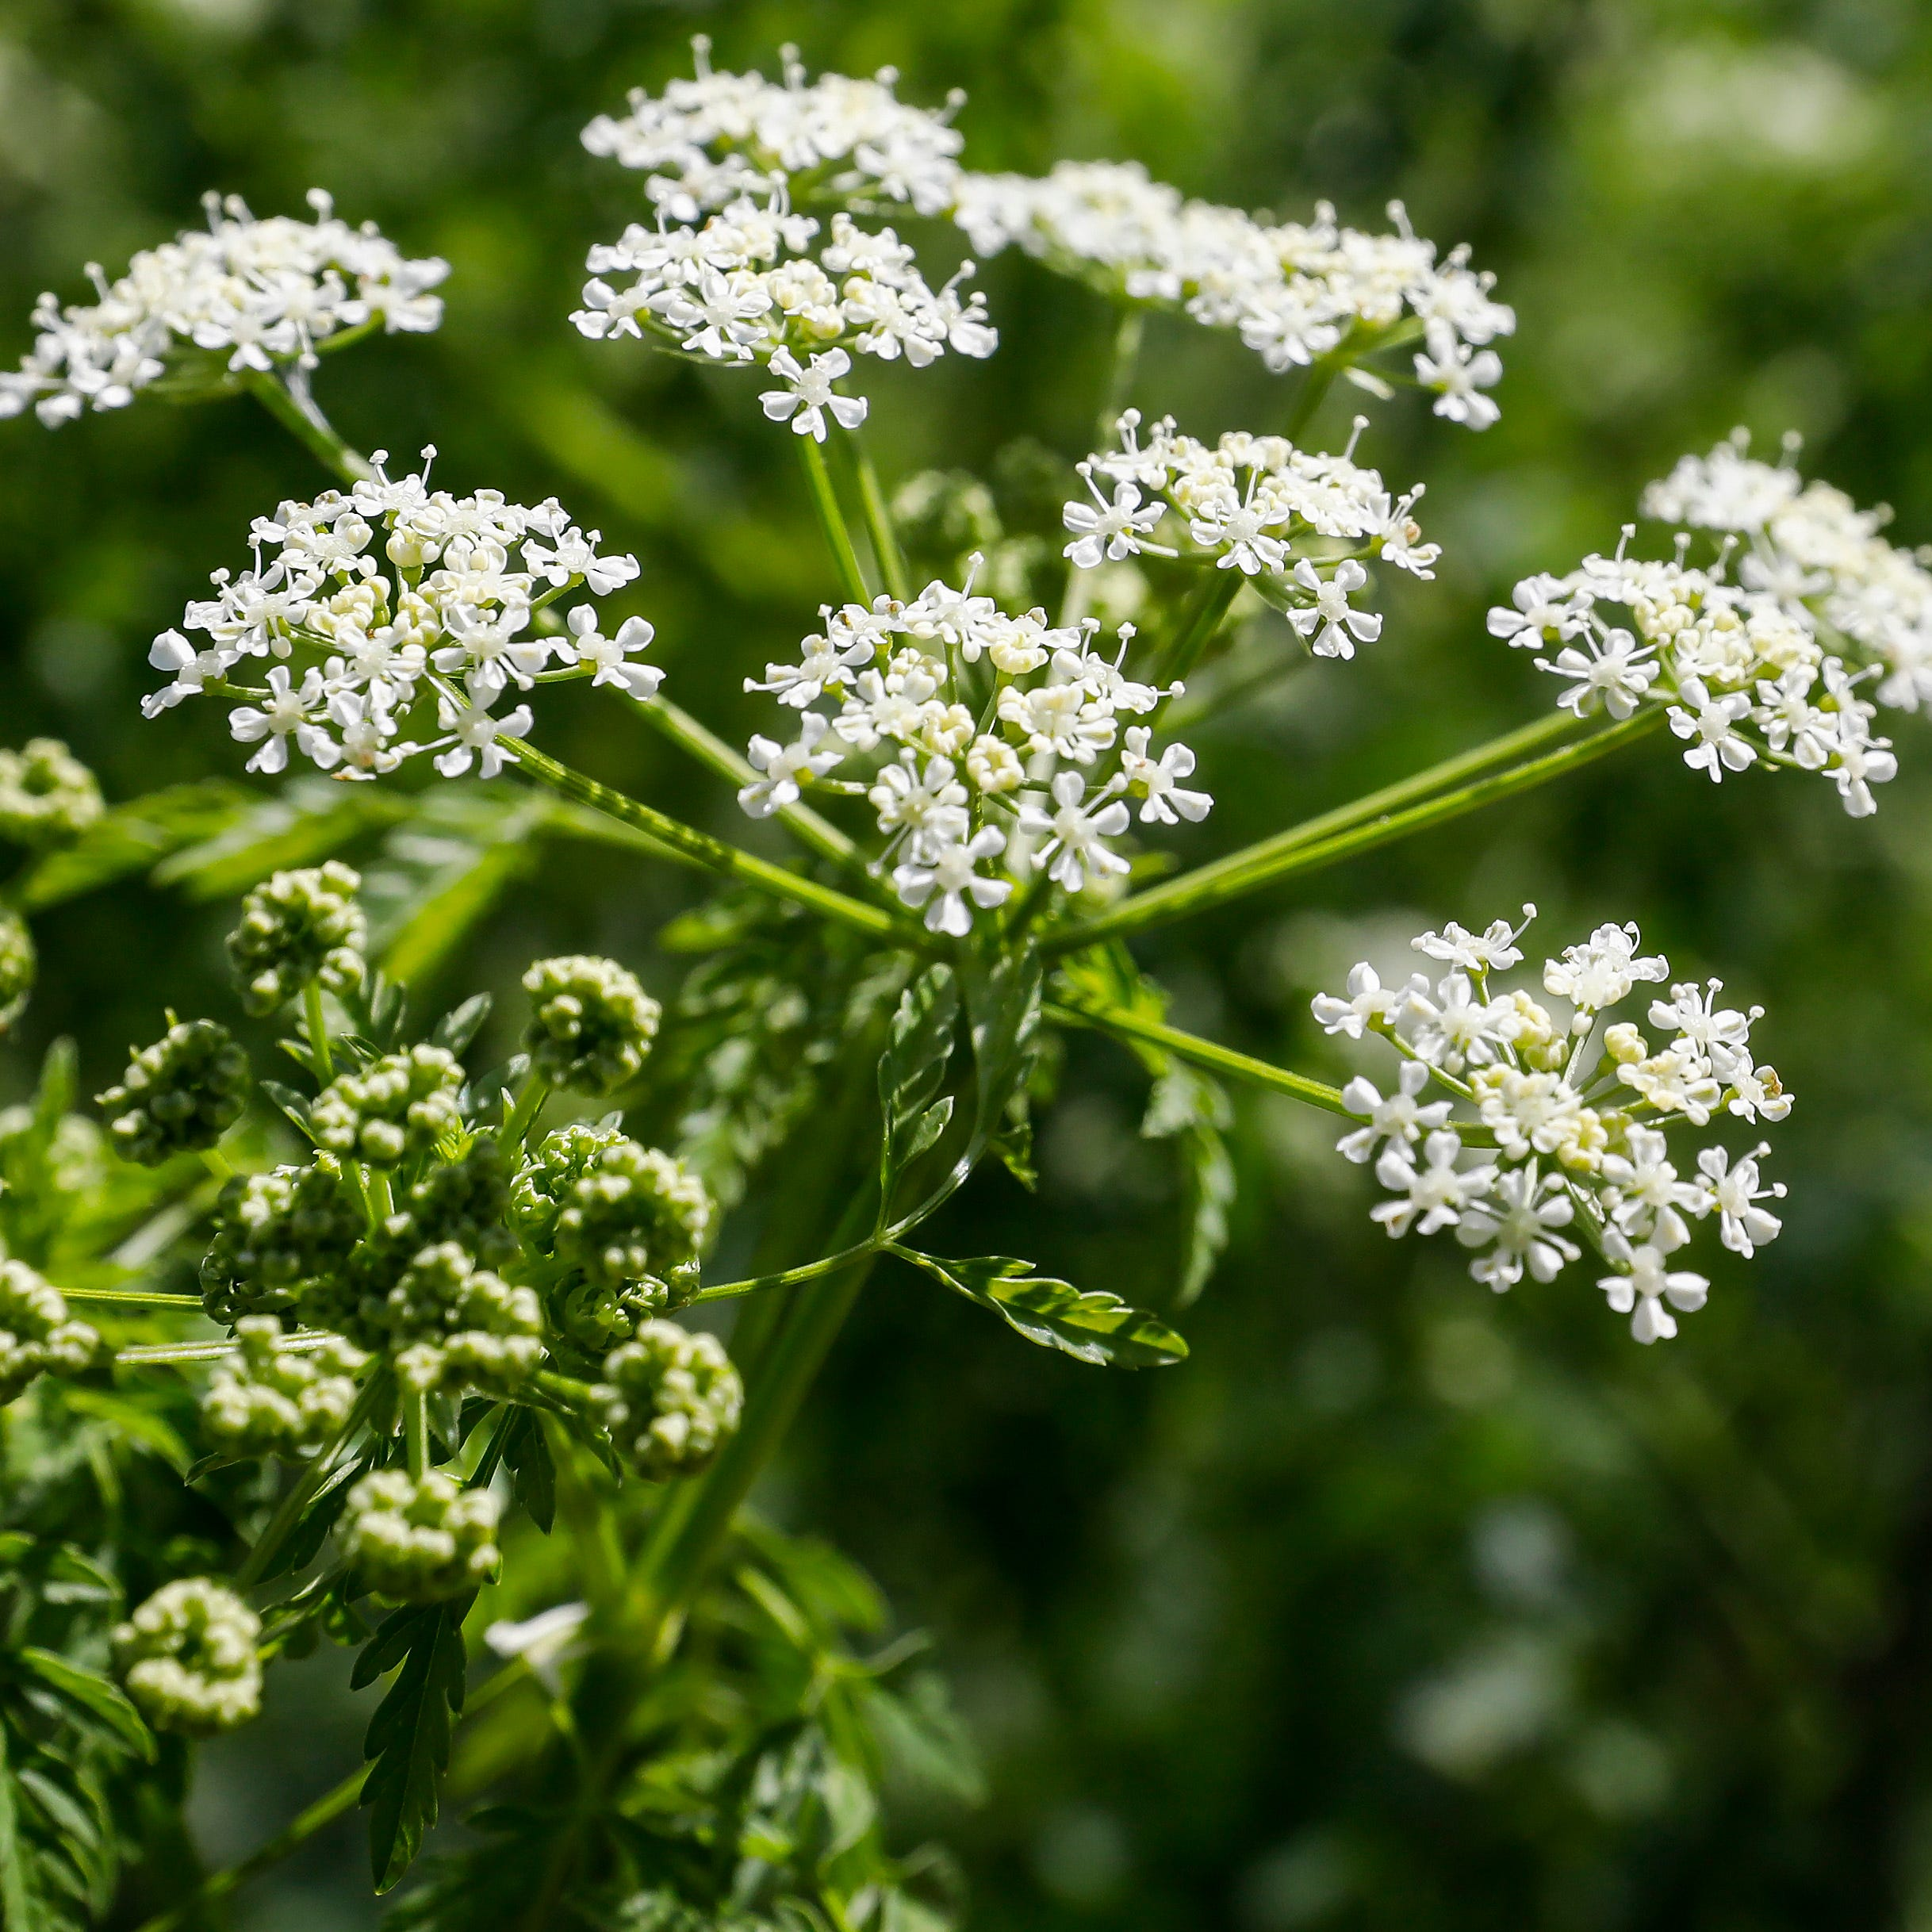 Deadly poison hemlock found growing near Killian sports fields